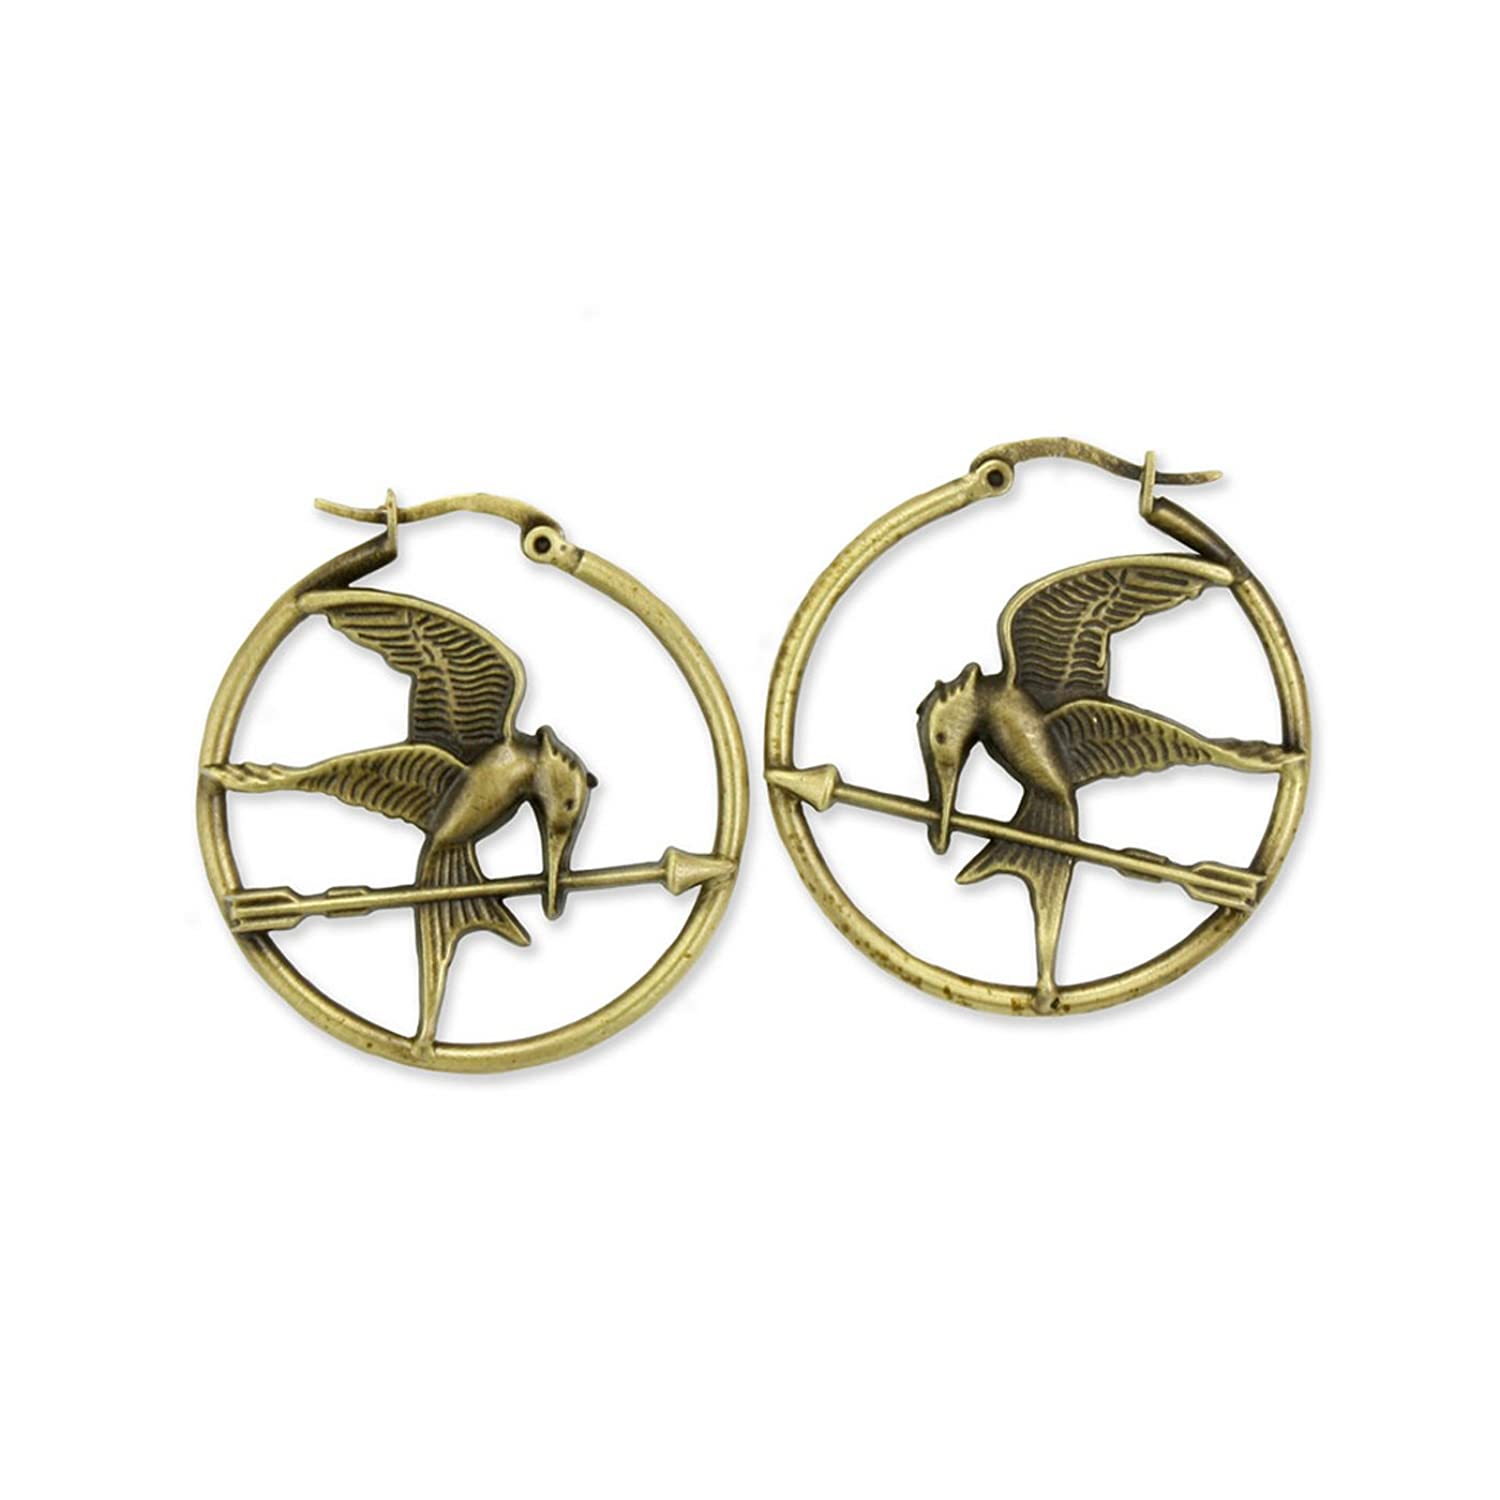 Amazon: The Hunger Games Movie Earrings Hoop